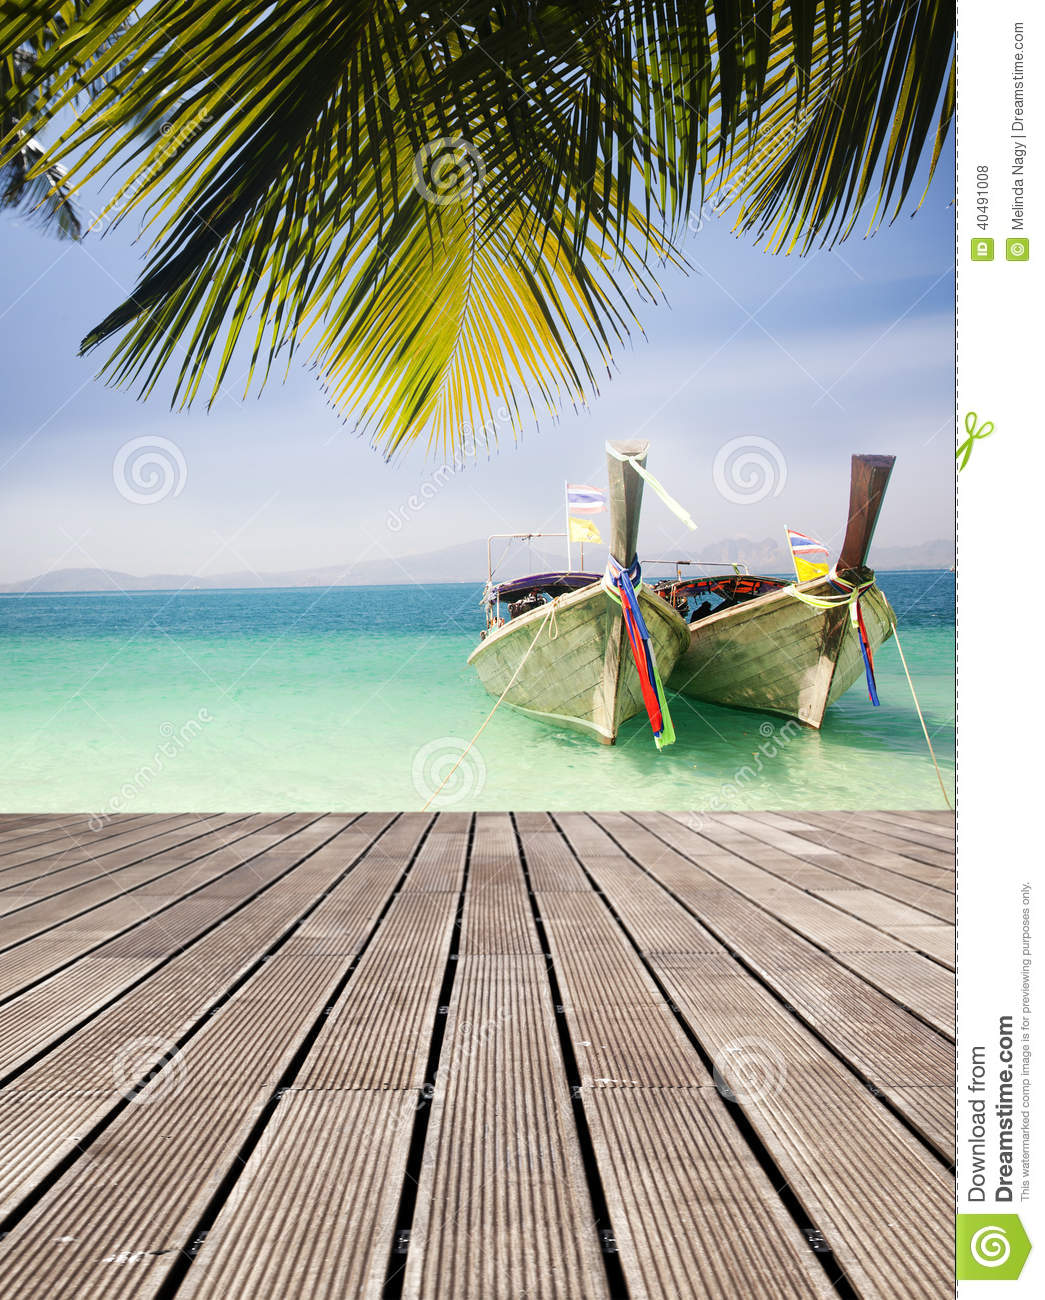 Adaman Sea And Wooden Boat In Thailand Stock Photo - Image ...